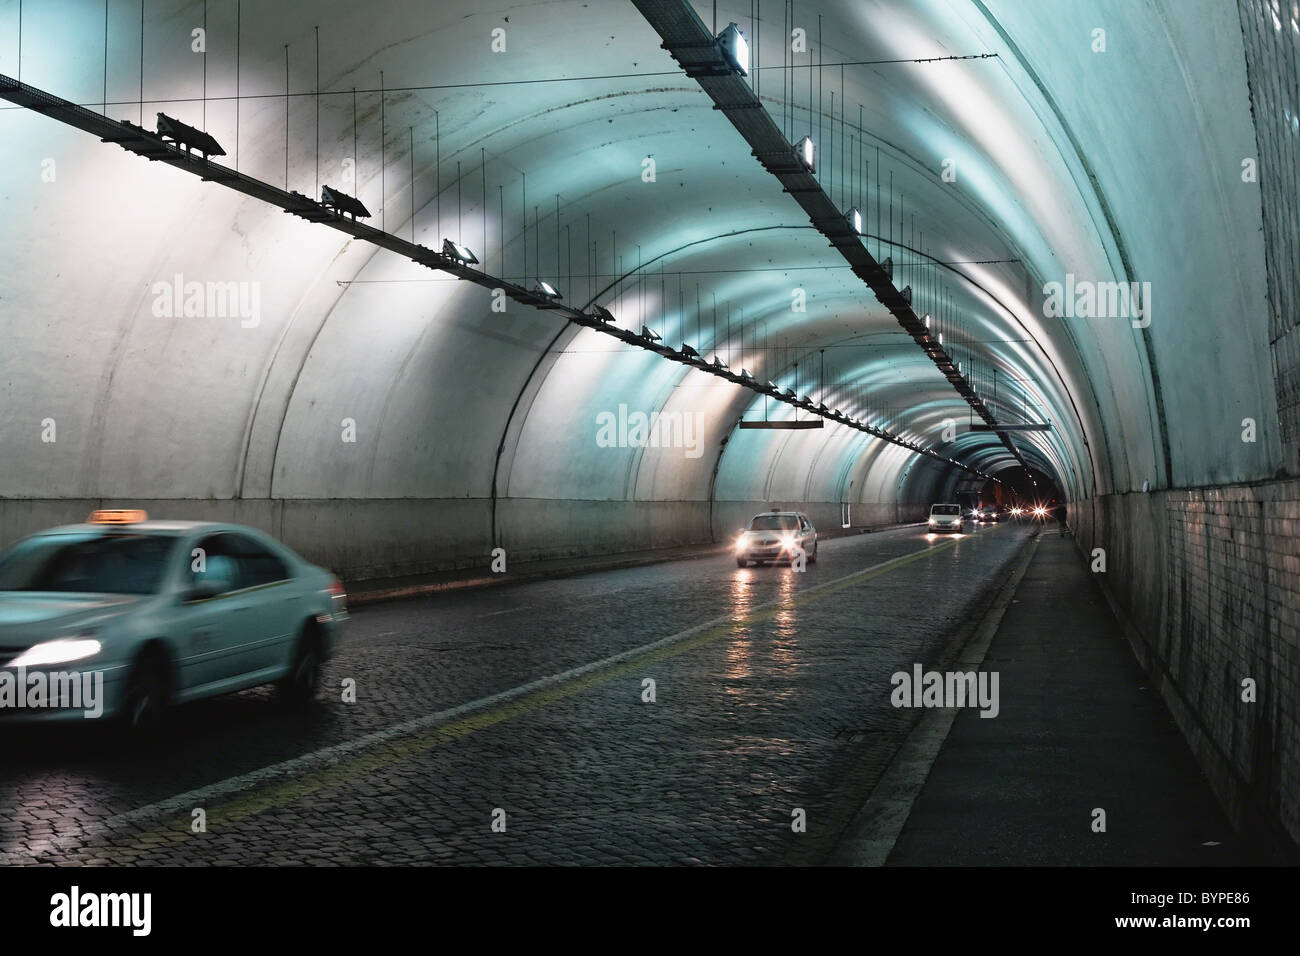 Cars Passing Through a Tunnel, Via Del Traforo, Rome, Italy - Stock Image